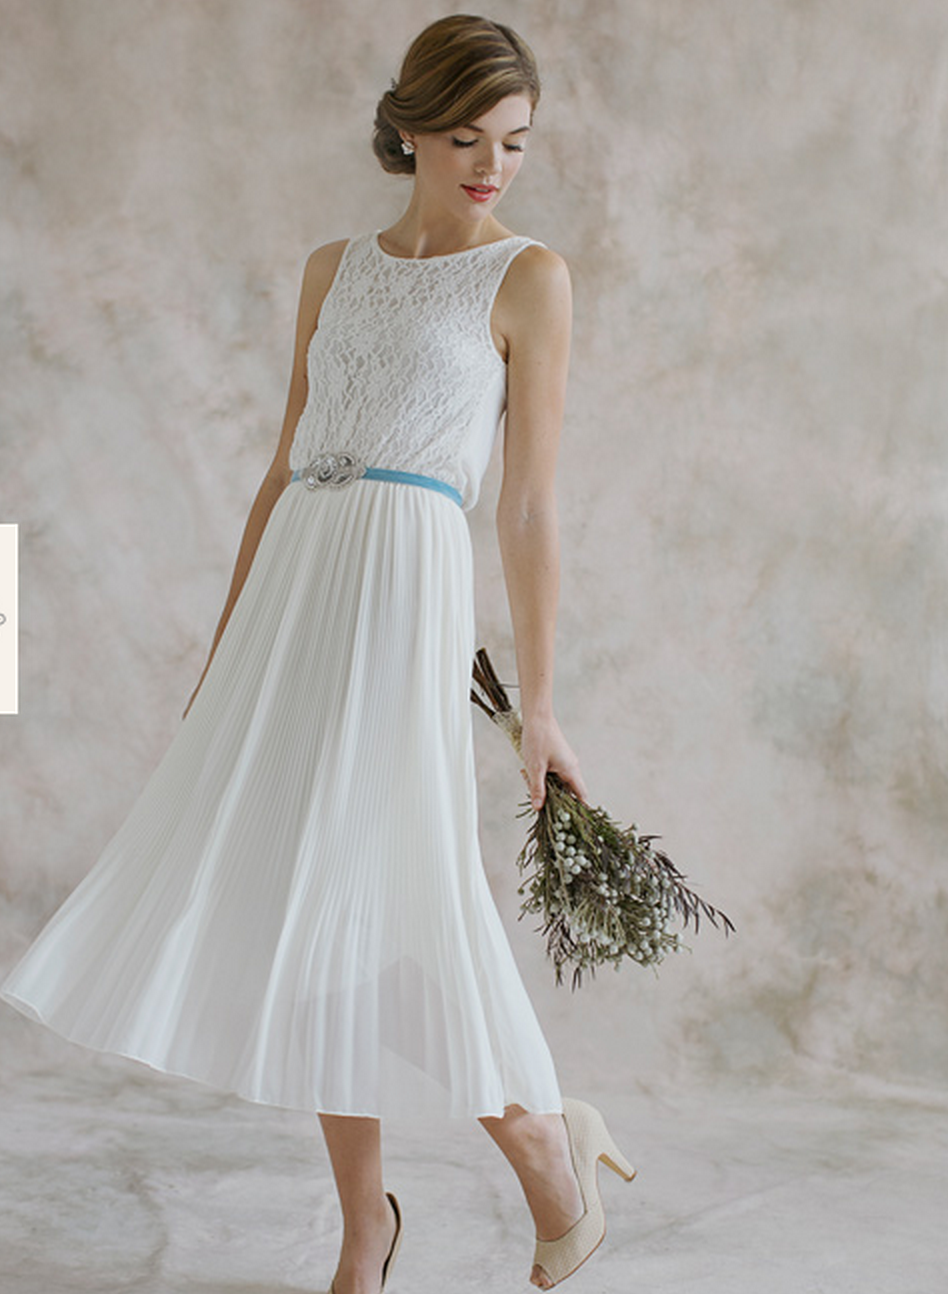 5d3aa447c8fc Advice for choosing dresses for a Second Wedding or Marriage. Find casual  and informal second wedding dresses and all the advice you could ever need.